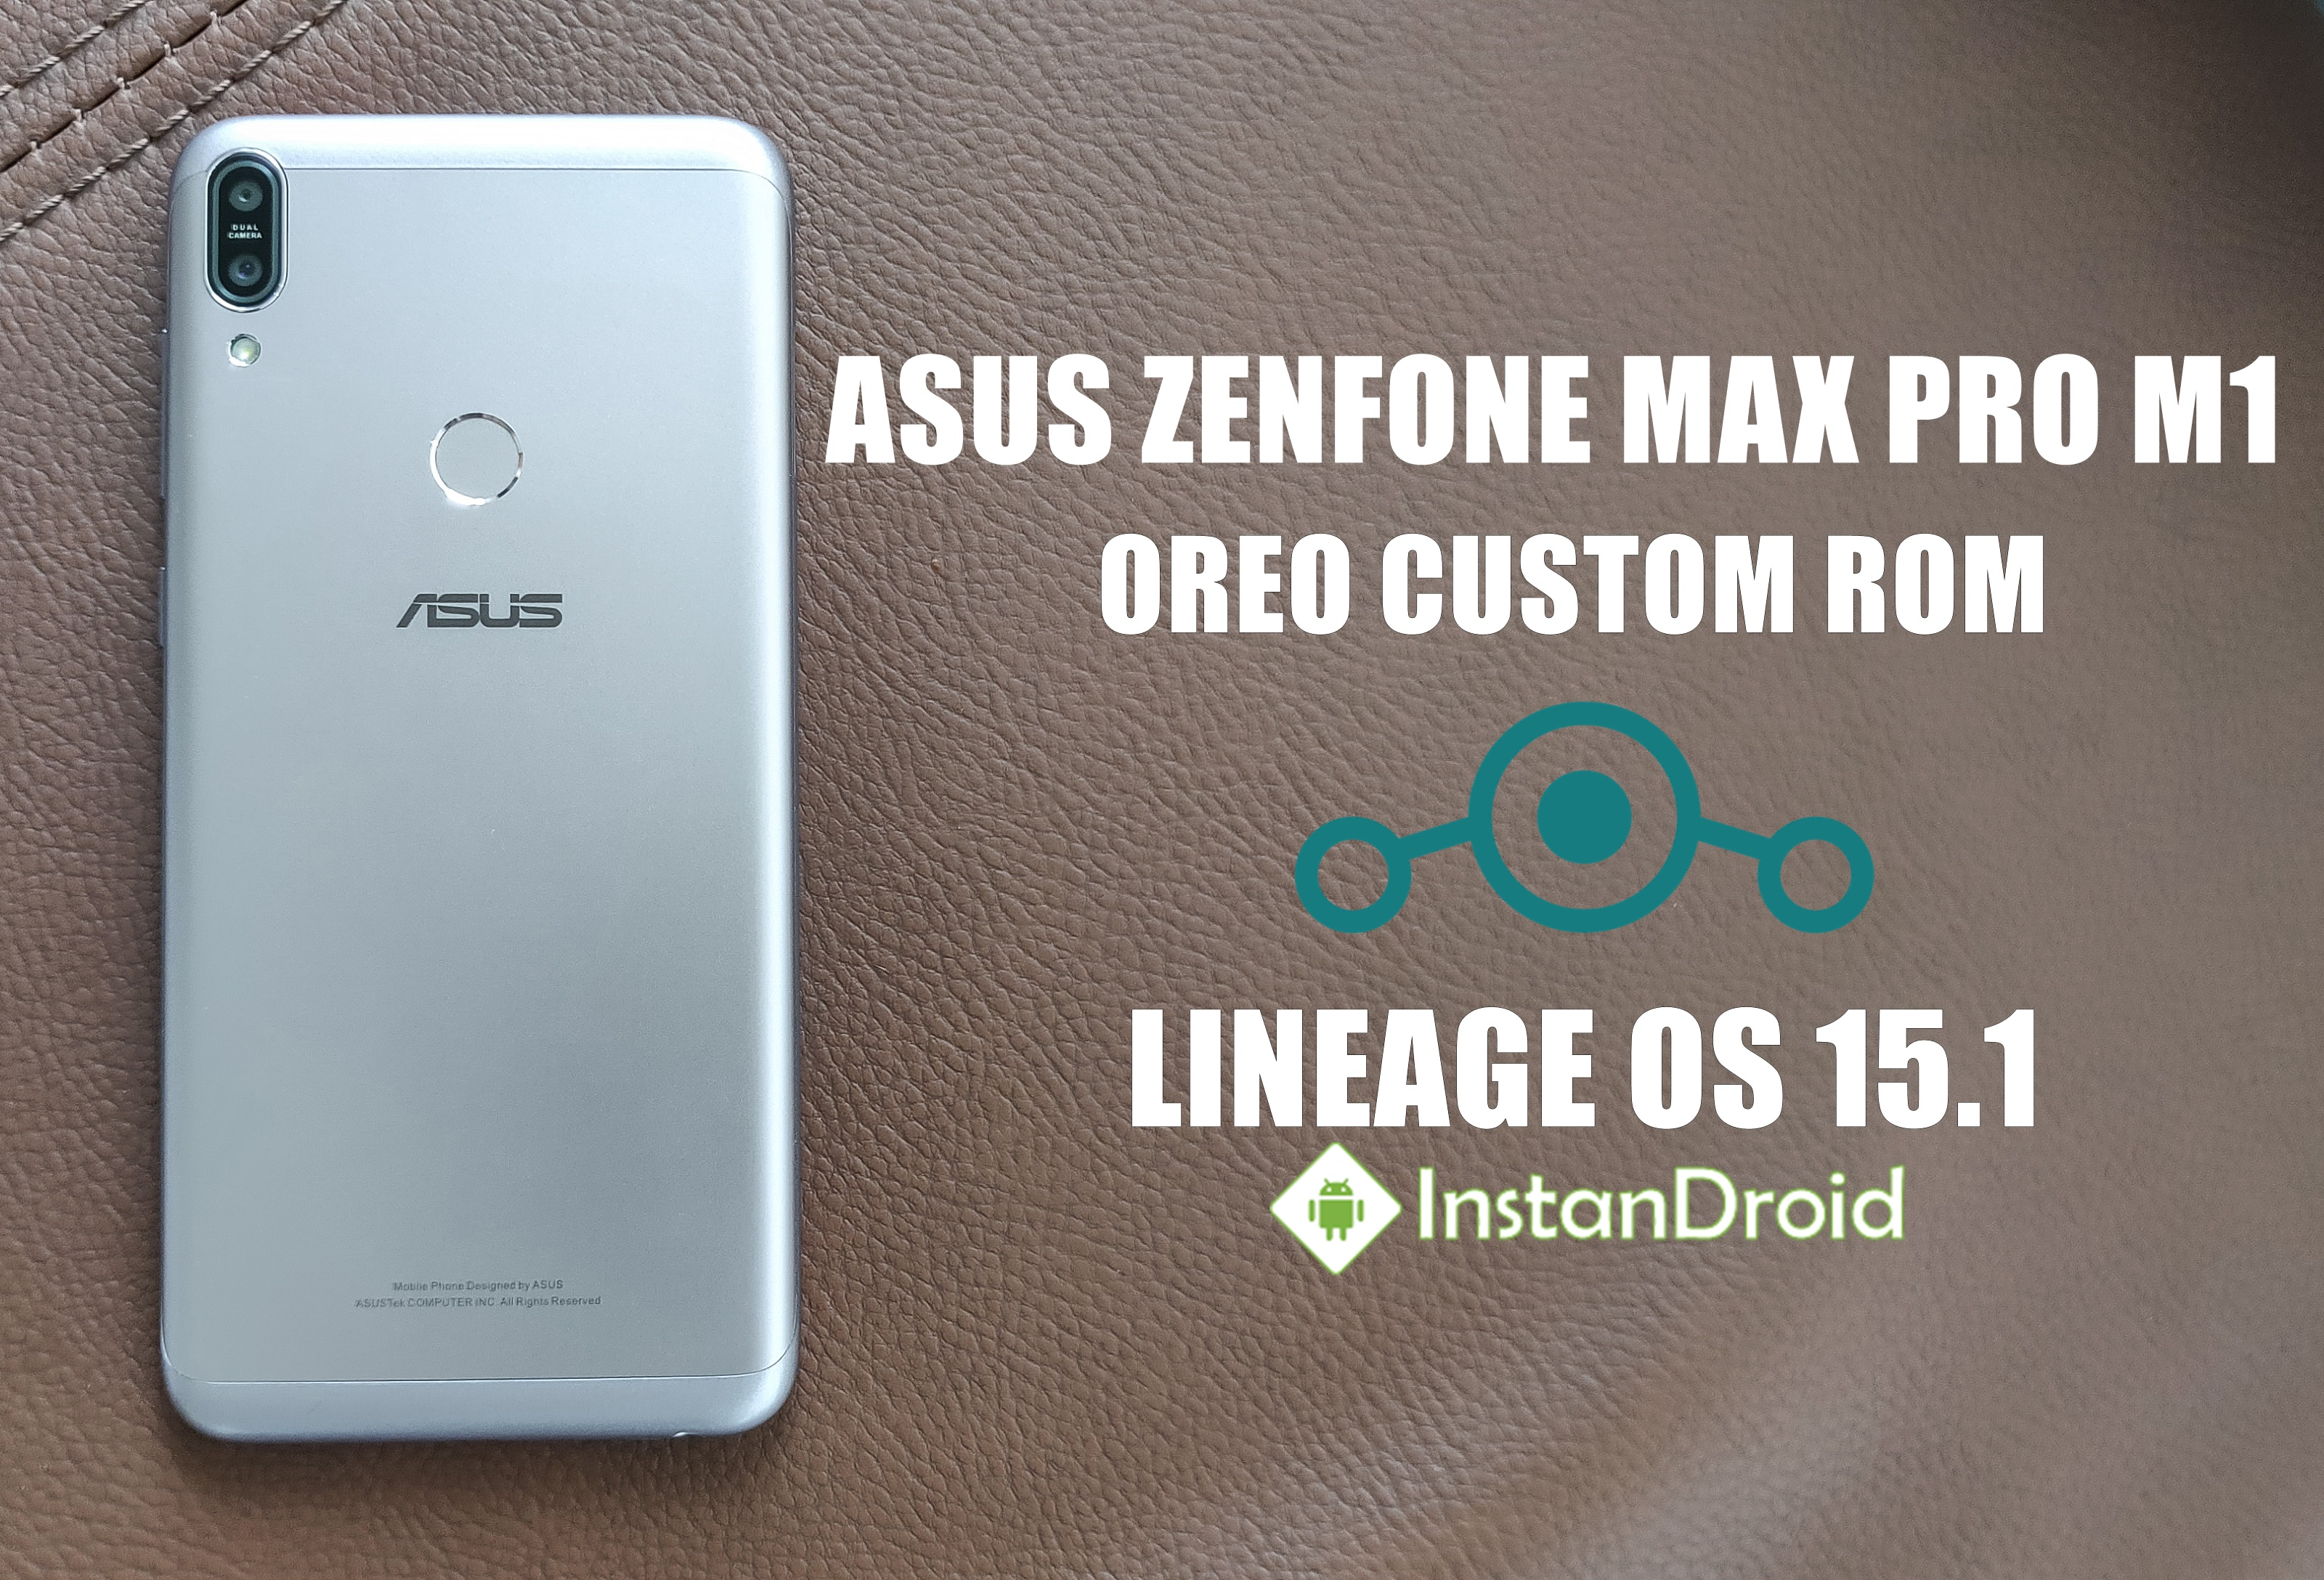 Asus Zenfone Max Pro M1 Oreo Custom ROM Lineage OS 15 1 (Official